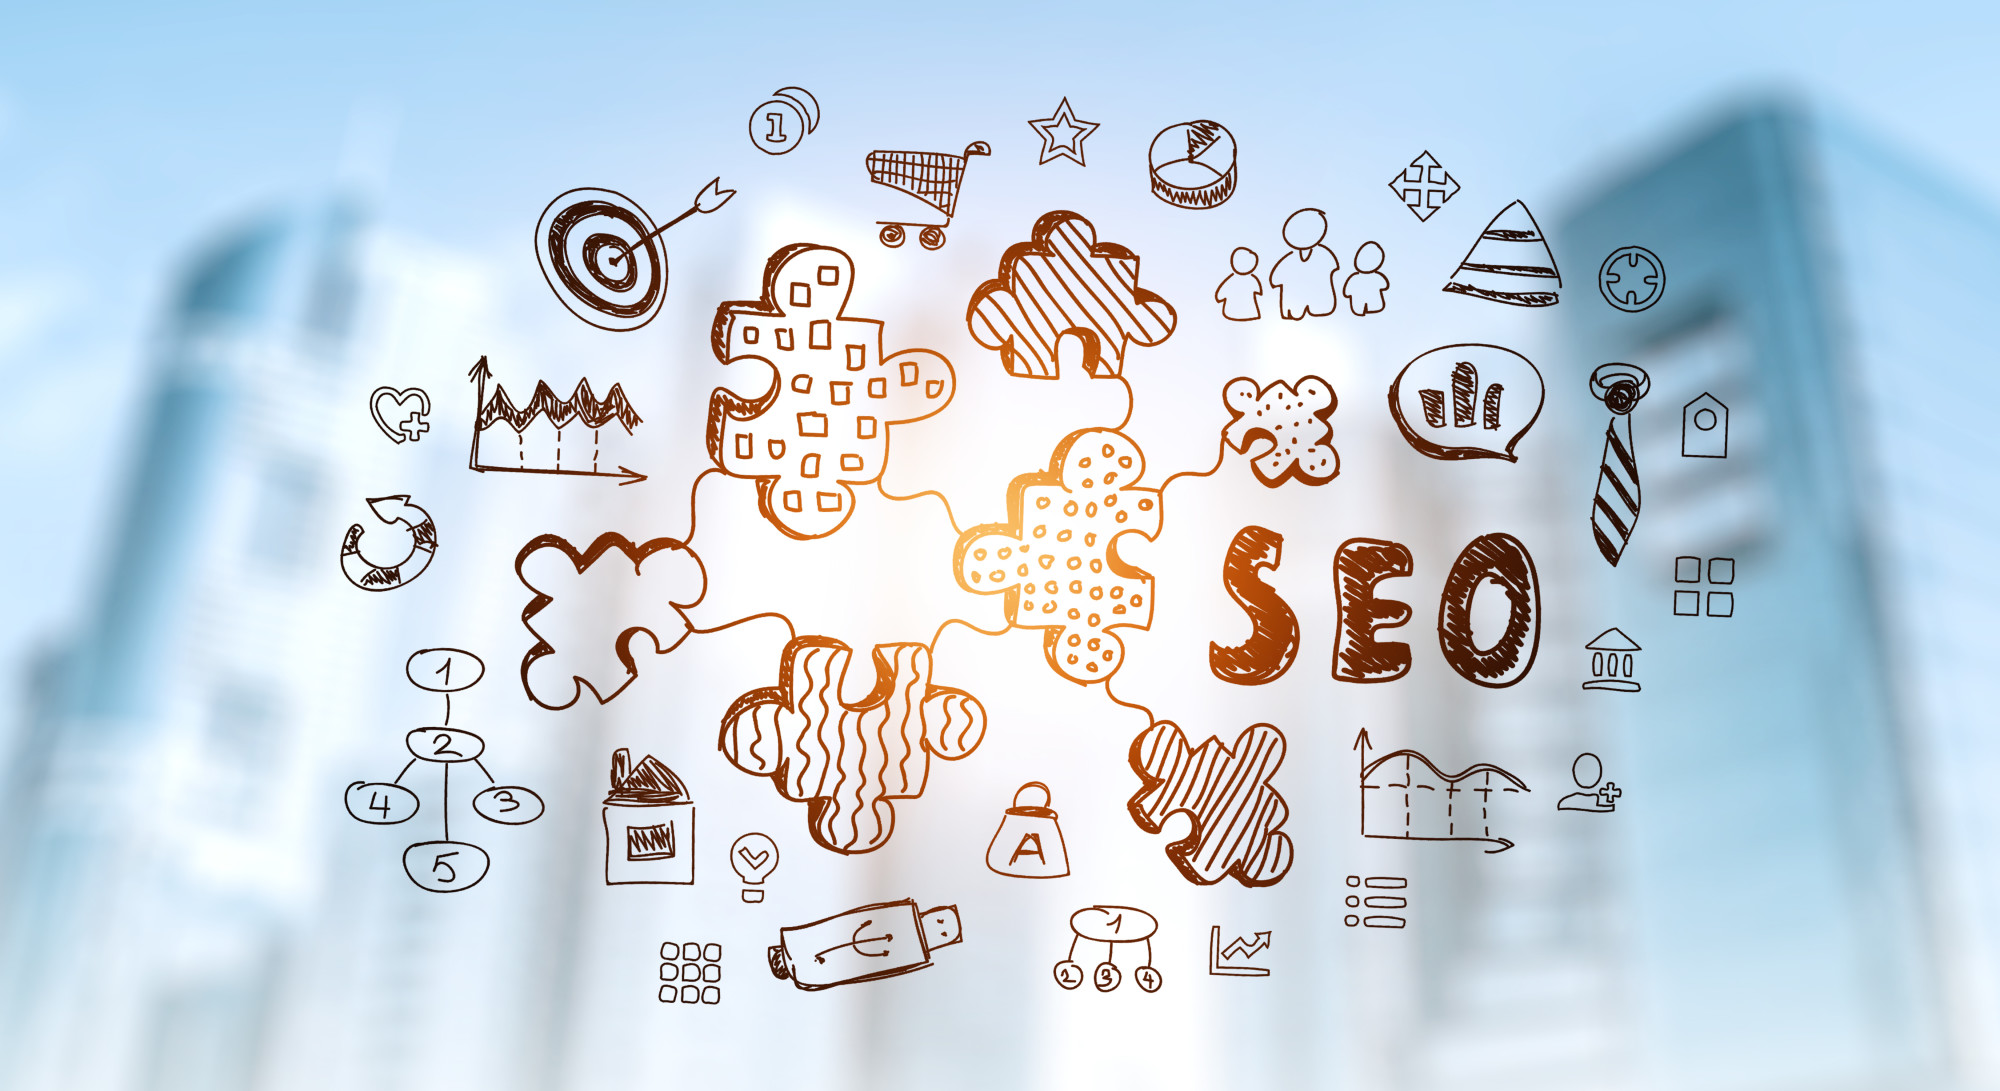 SEO and related icons